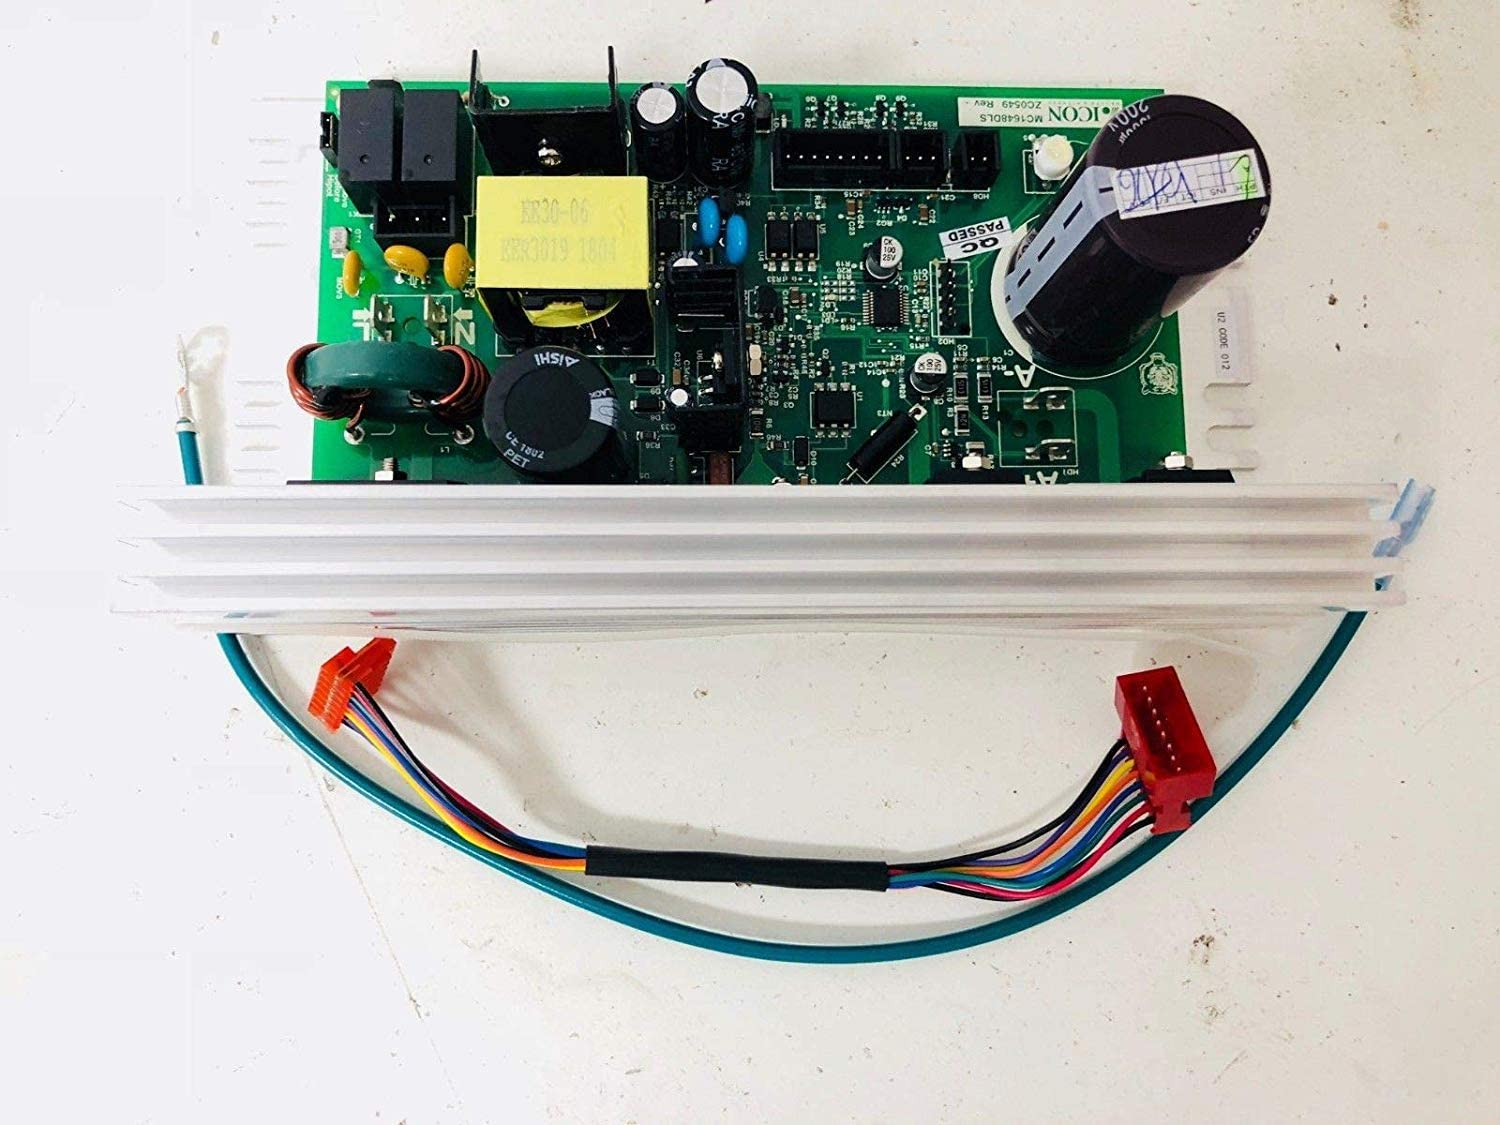 Icon Health New arrival Luxury goods Fitness Inc. Motor 399610 Controller Lower Board